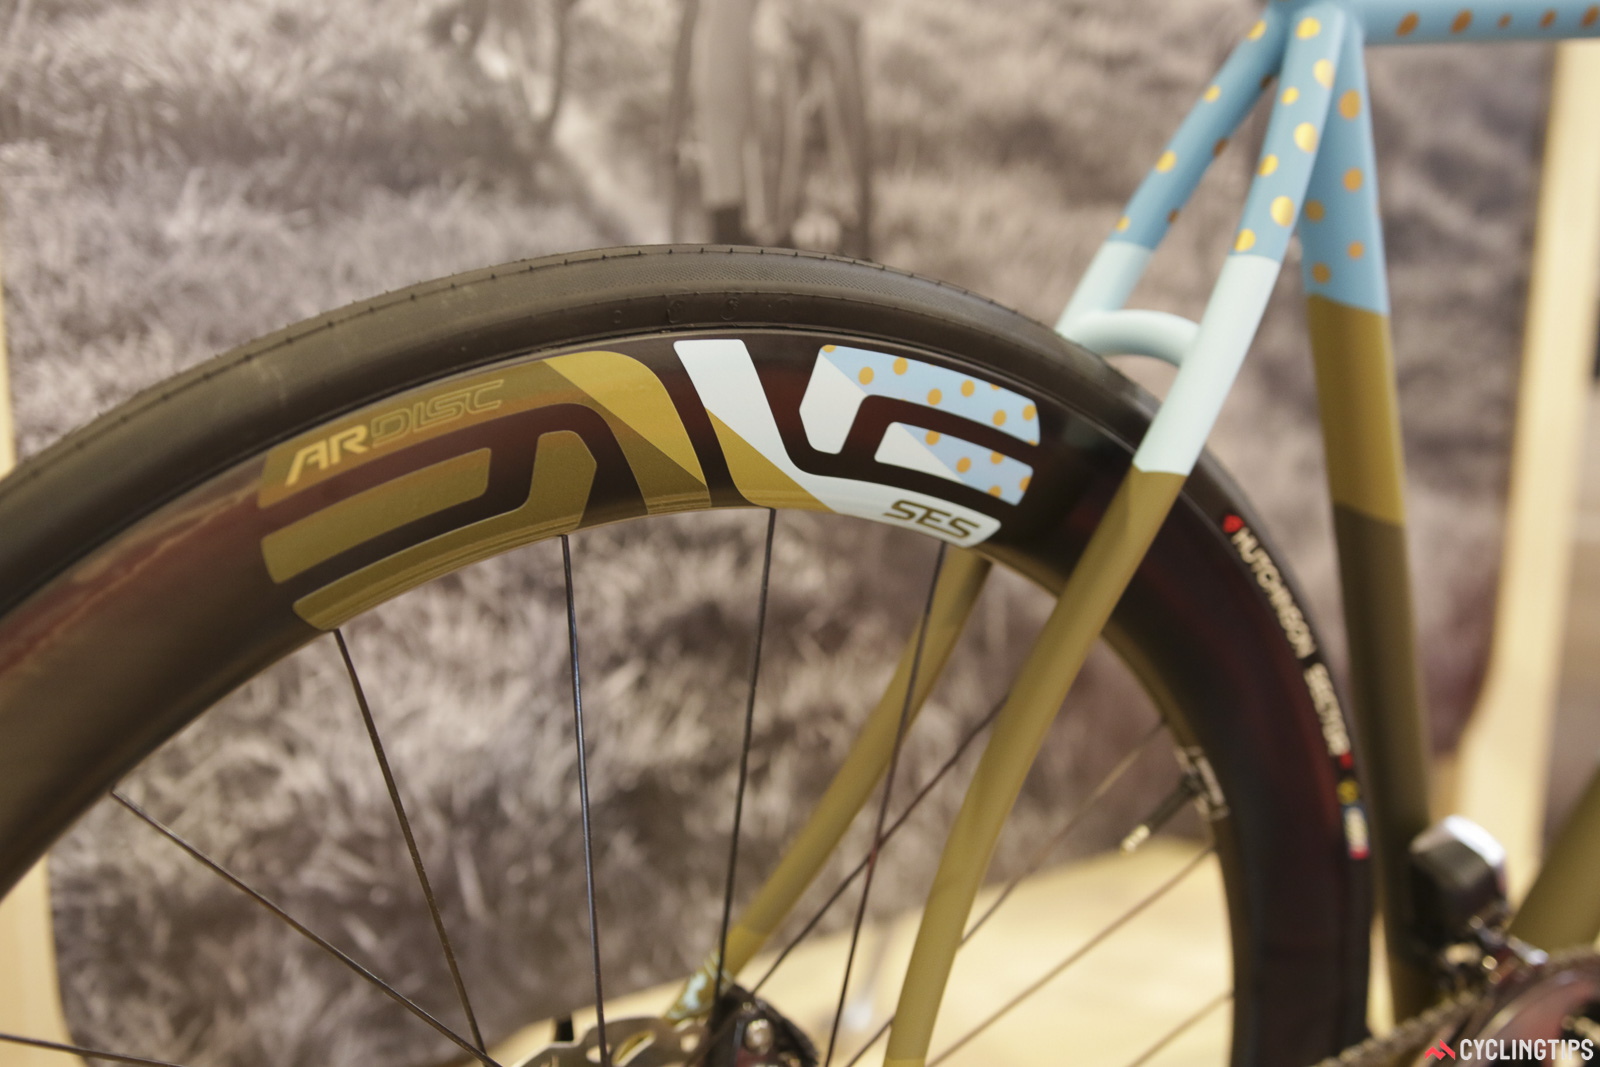 Enve has a new wheel for the modern disc brake road bike. The SES 4.5 AR Disc is designed to be aerodynamically optimised with 28c tyres. The rims are truly disc-specific and are said to be about 50g a piece lighter than an equivalent rim brake model. Tubeless ready, these rims will be equally at home on high performance gravel bikes, although the key focus is wide-rolling road. Wheelsets using Chris King hubs are said to weight around the 1,550 mark. Seems the age of compromise-free disc setups is upon us.  Photo: David Rome.